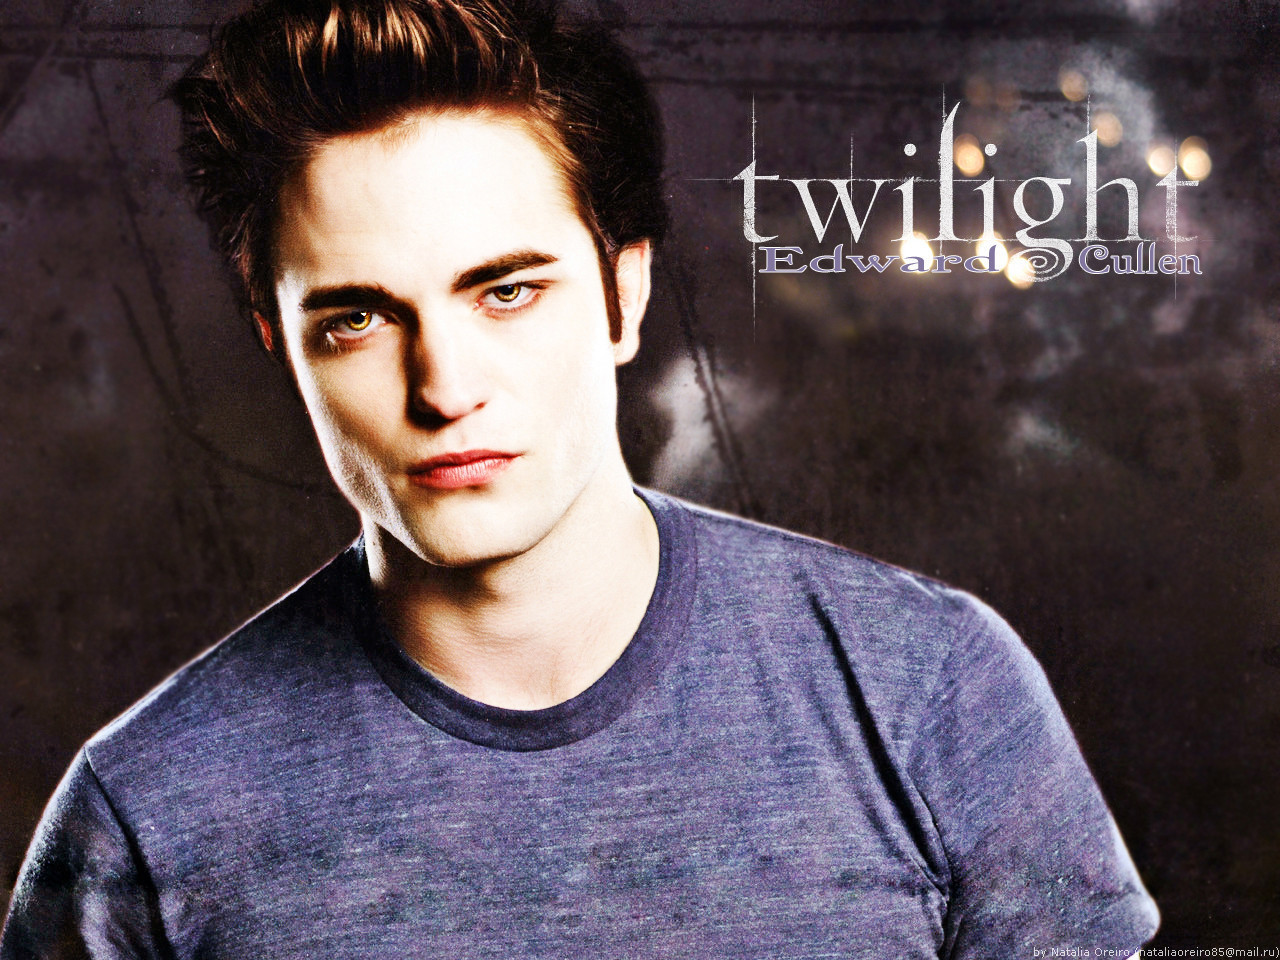 Edward cullen twilight series wallpaper 4451649 fanpop for Twilight edward photos